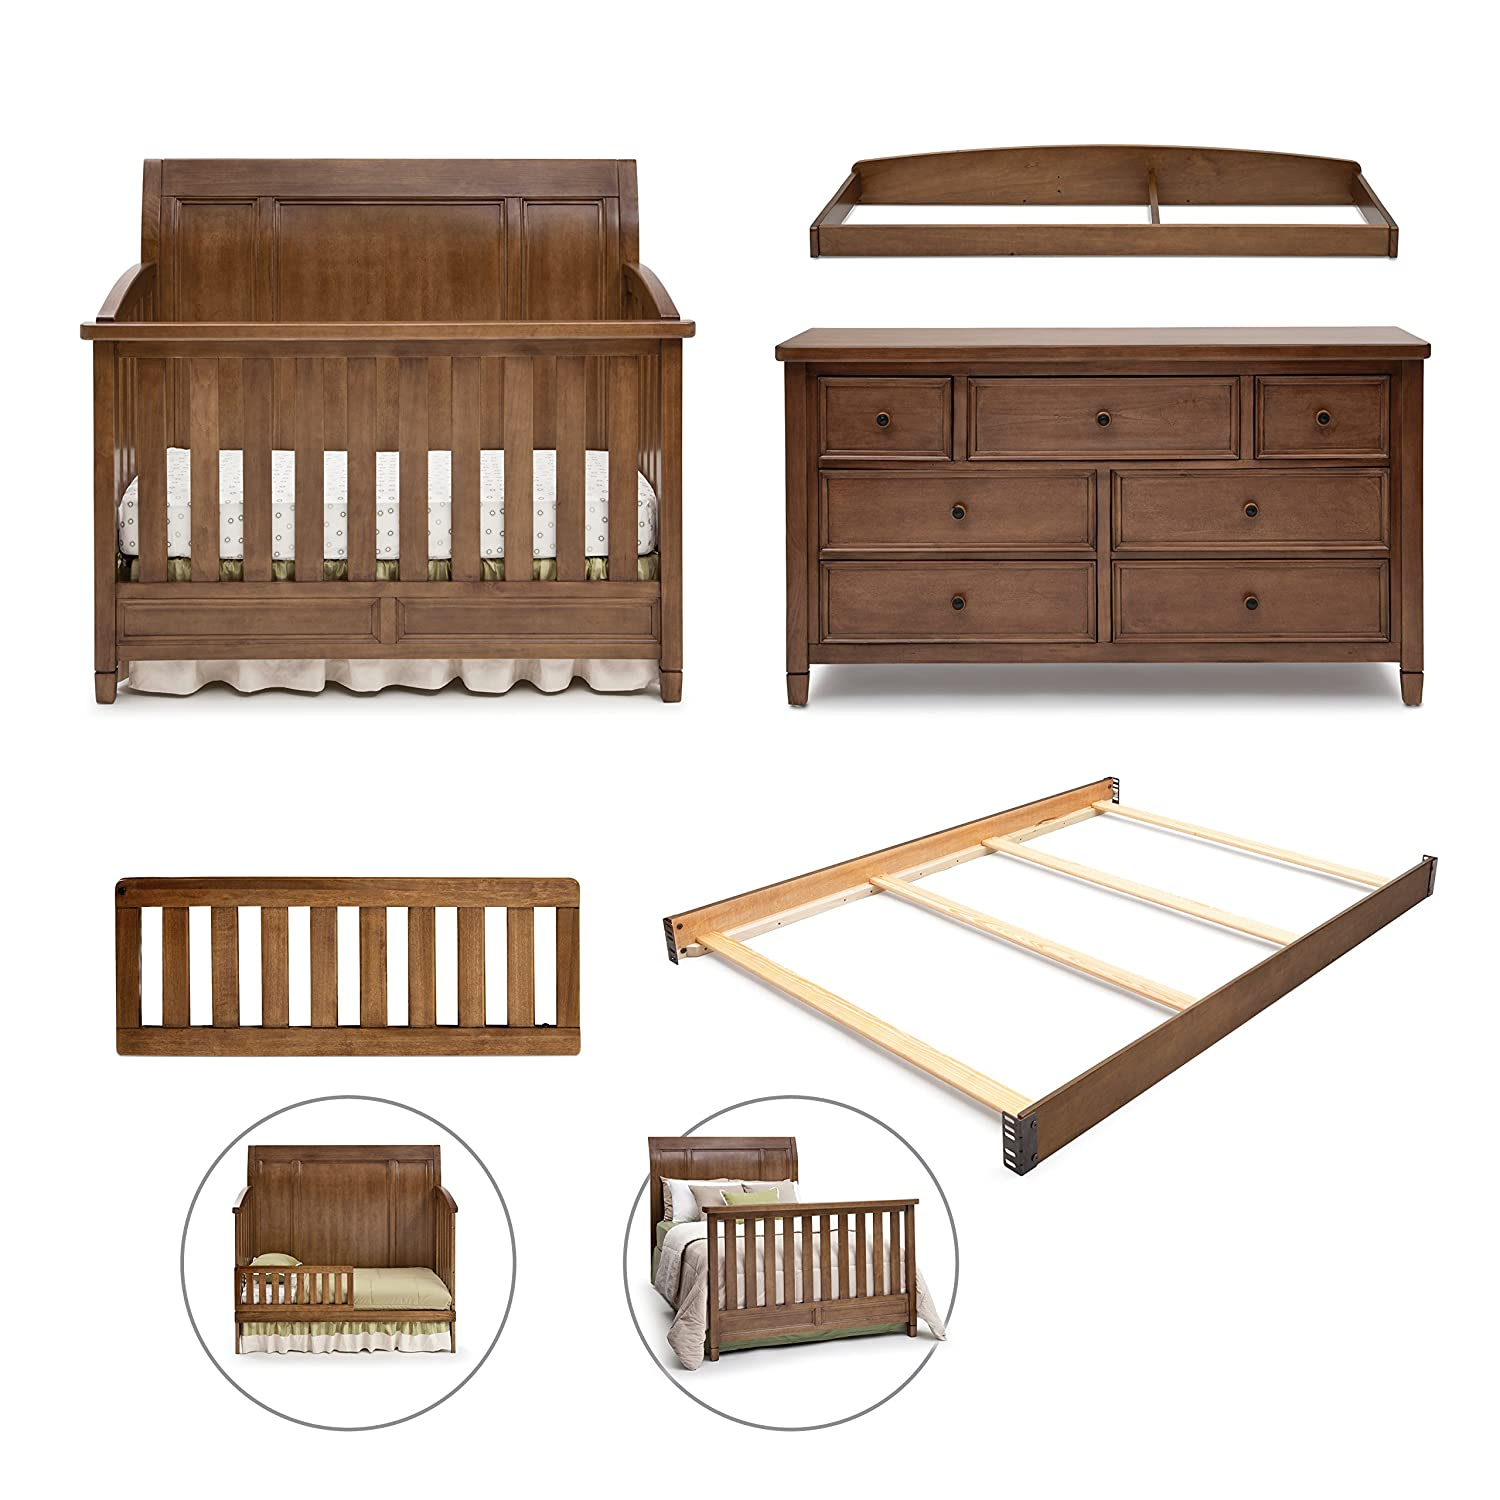 Amazon.com : Simmons Kids King 5 Piece Nursery Furniture Set; Crib, 7  Drawer Dresser, Changing Top, Toddler Guardrail U0026 Full Size Conversion Kit,  ...